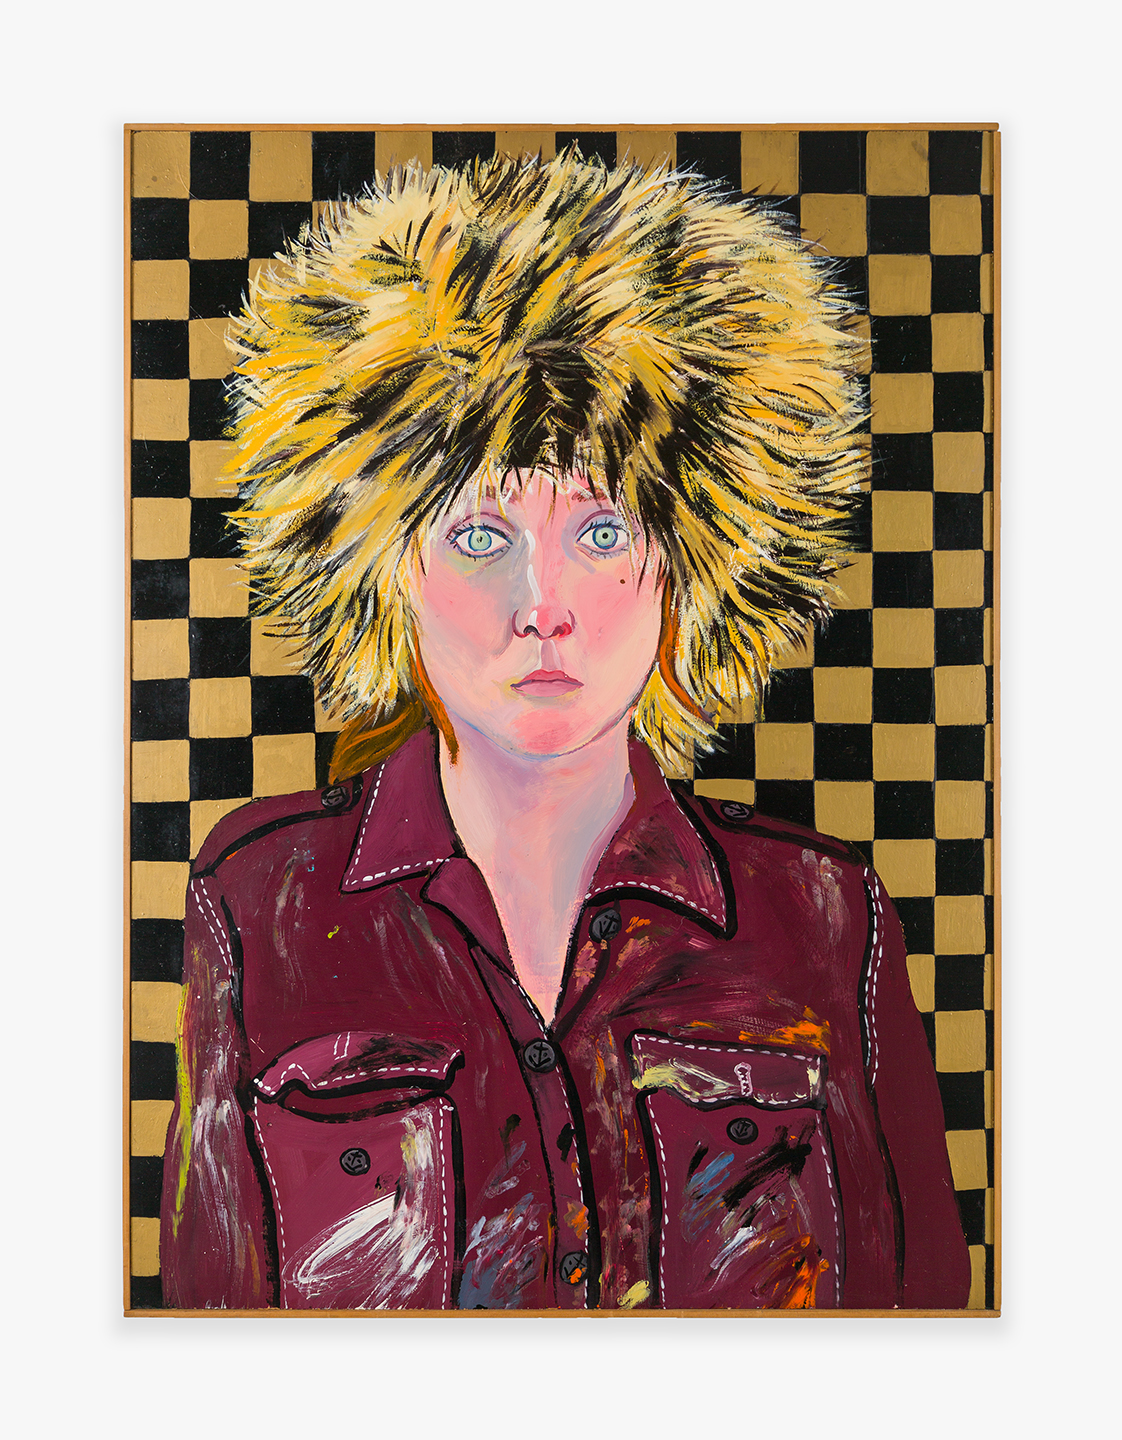 Joan Brown, Self-Portrait in Fur Hat, 1972. Oil enamel on panel; Work: 40 5/8 x 29 3/4 in (103.2 x 75.6 cm) Framed: 41 1/4 x 30 1/4 in (104.8 x 76.8 cm). Courtesy di Rosa Center for Contemporary Art, Napa, and Venus Over Manhattan, New York.